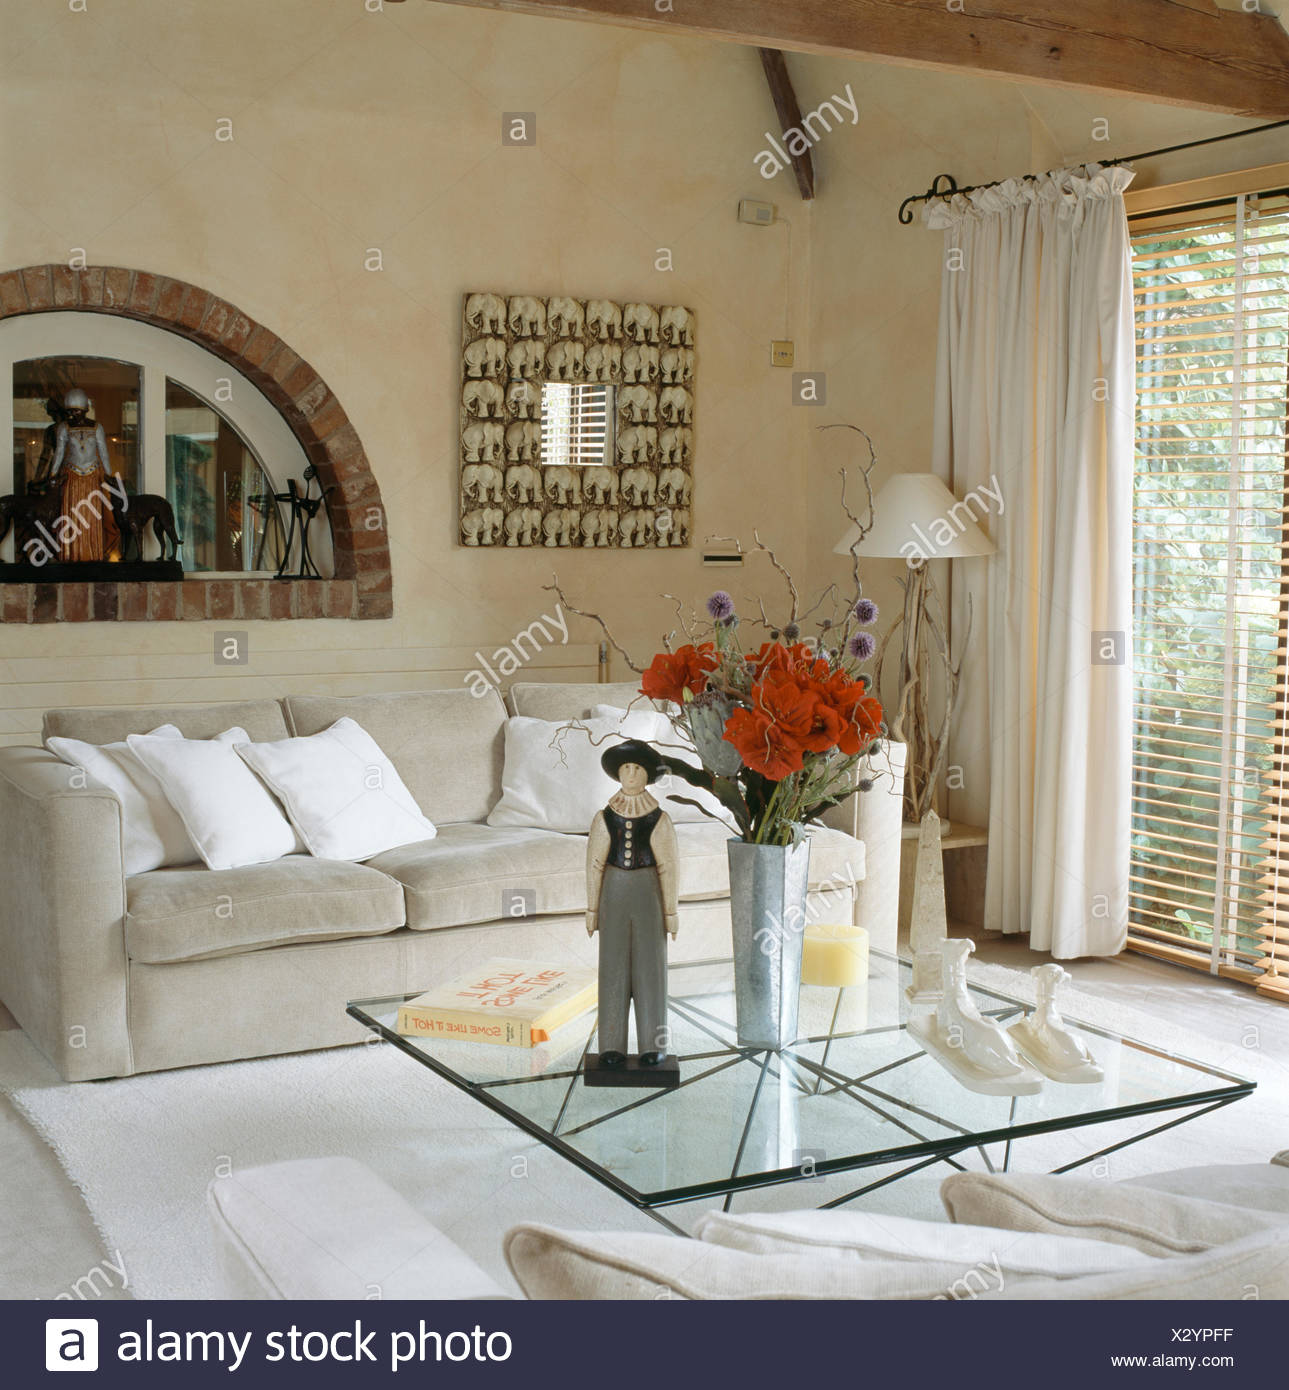 Wooden Figure On Glass Coffee Table In Modern Living Room With Arched Window Above Grey Sofa Stock Photo Alamy